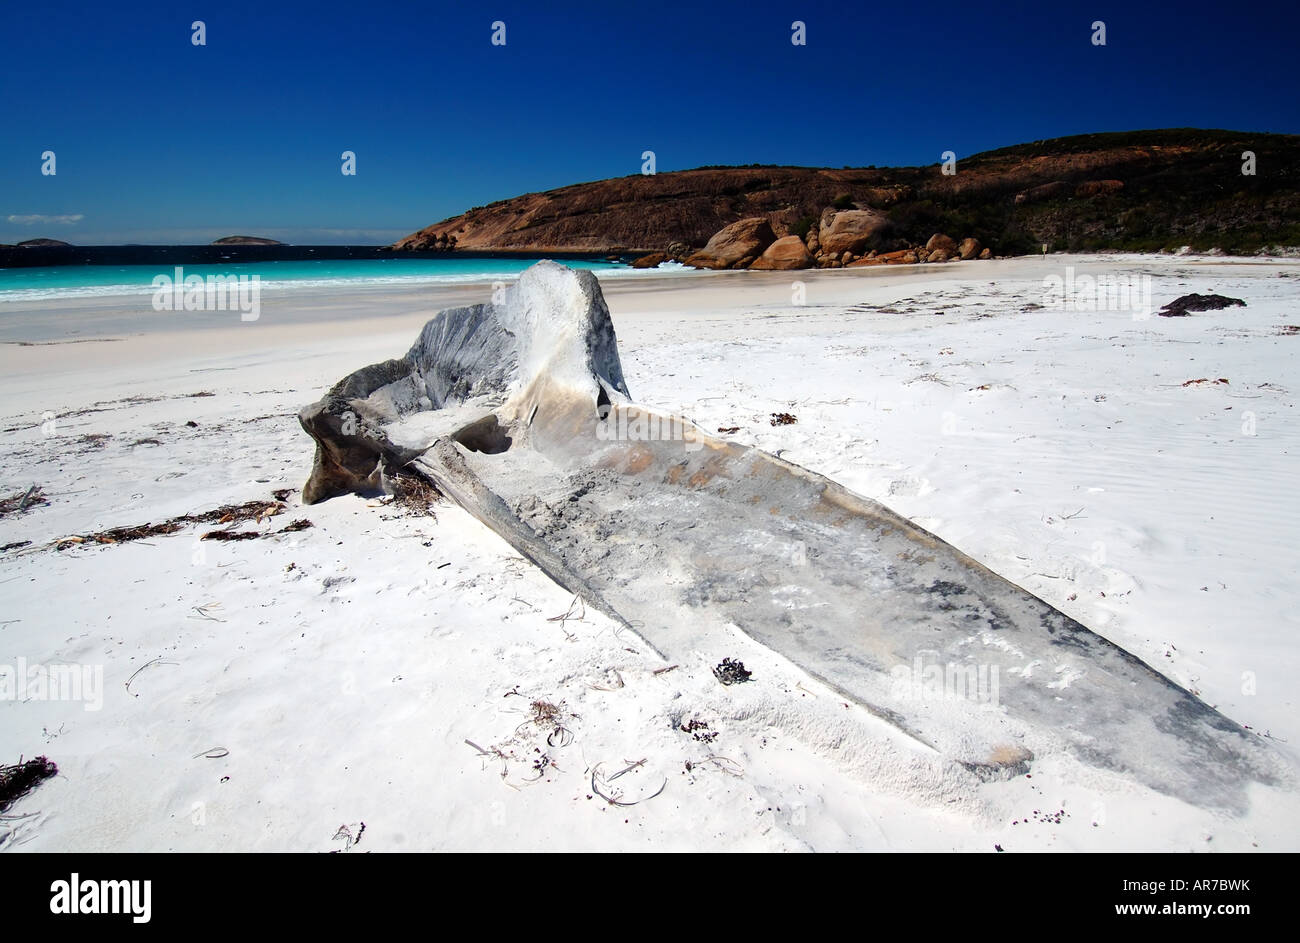 Whale skull buried in remote wilderness beach of Thistle Cove Cape Le Grand National Park Western Australia Stock Photo